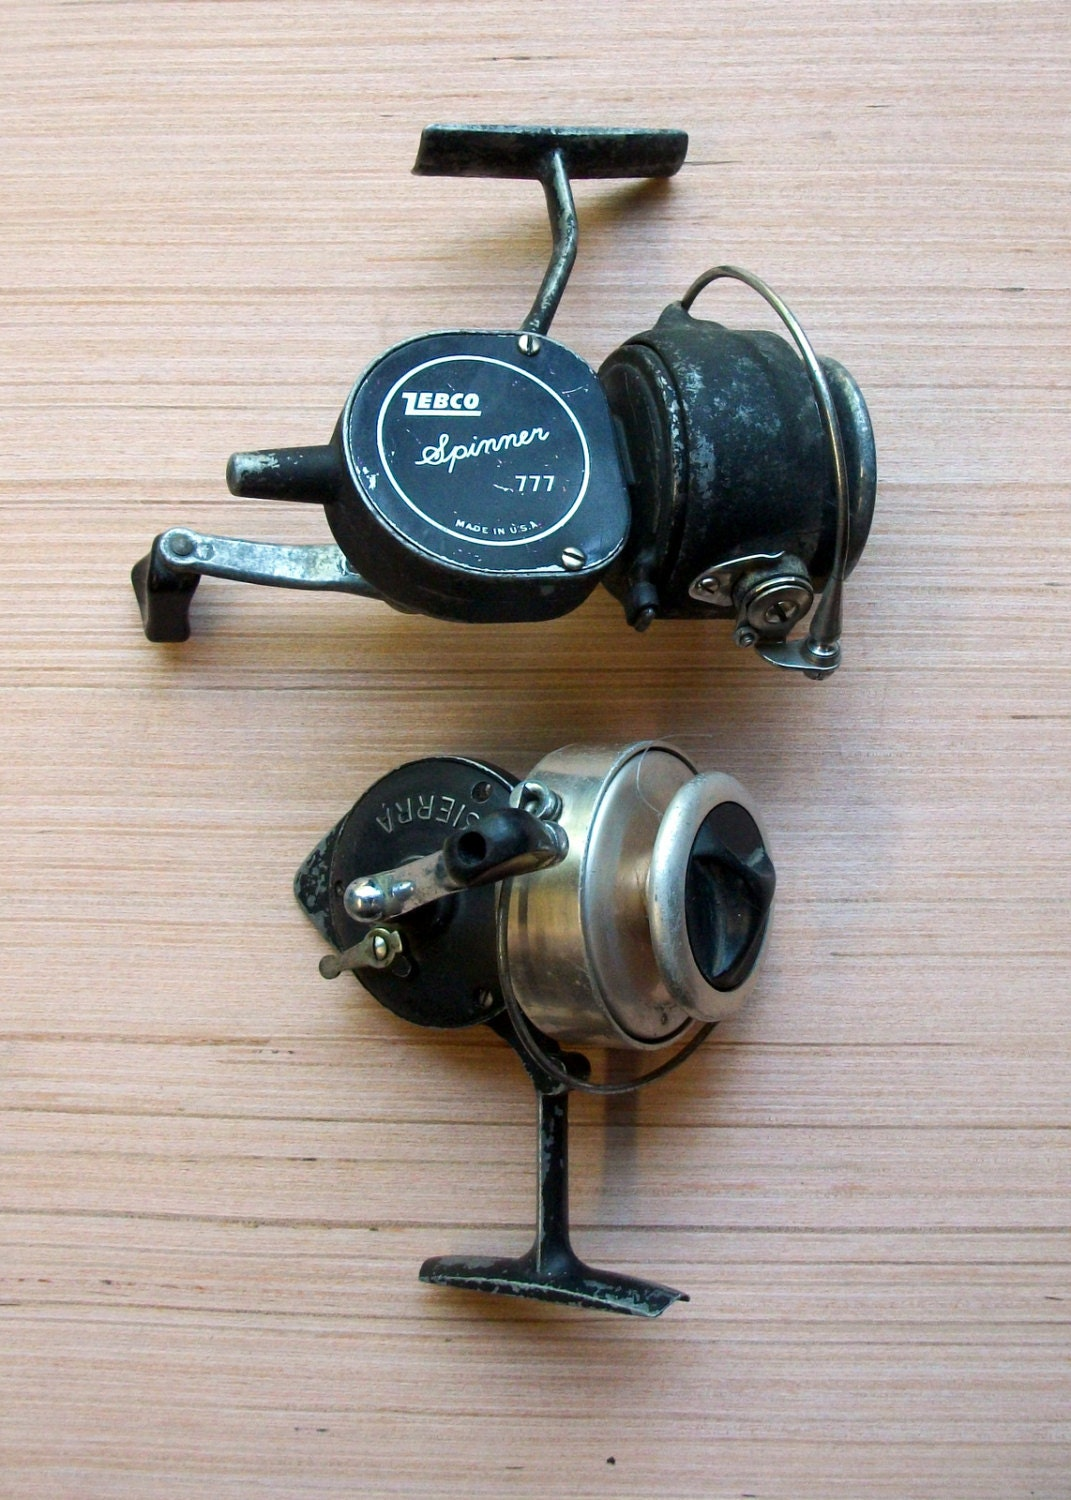 Vintage fishing reels antique spinning reels sierra zebco for Vintage fishing reels